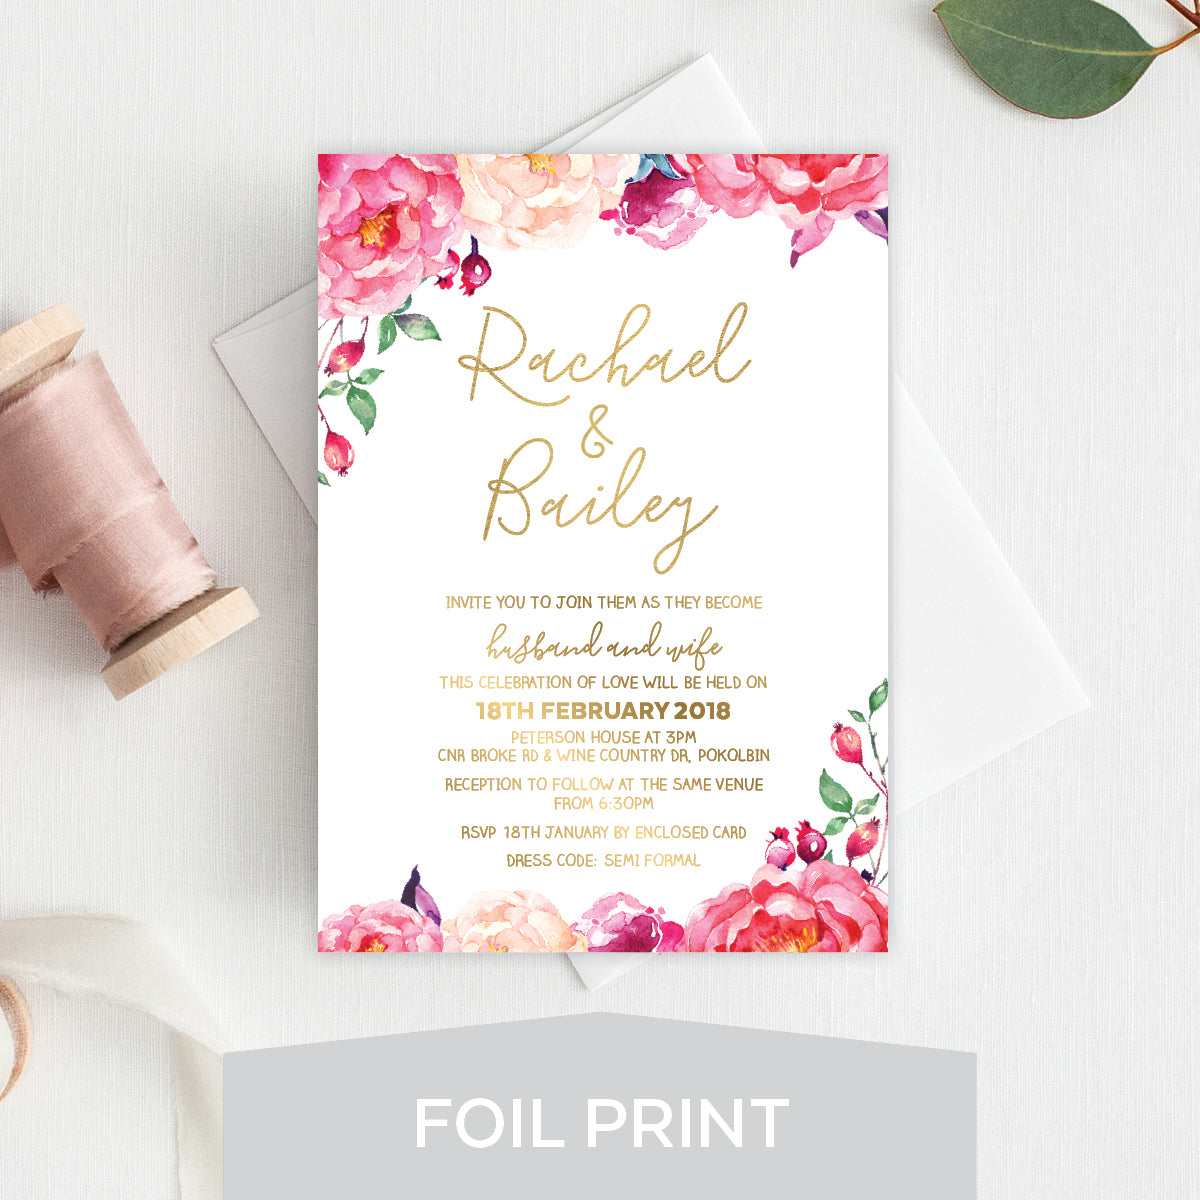 In Bloom (White) Foil Invitation